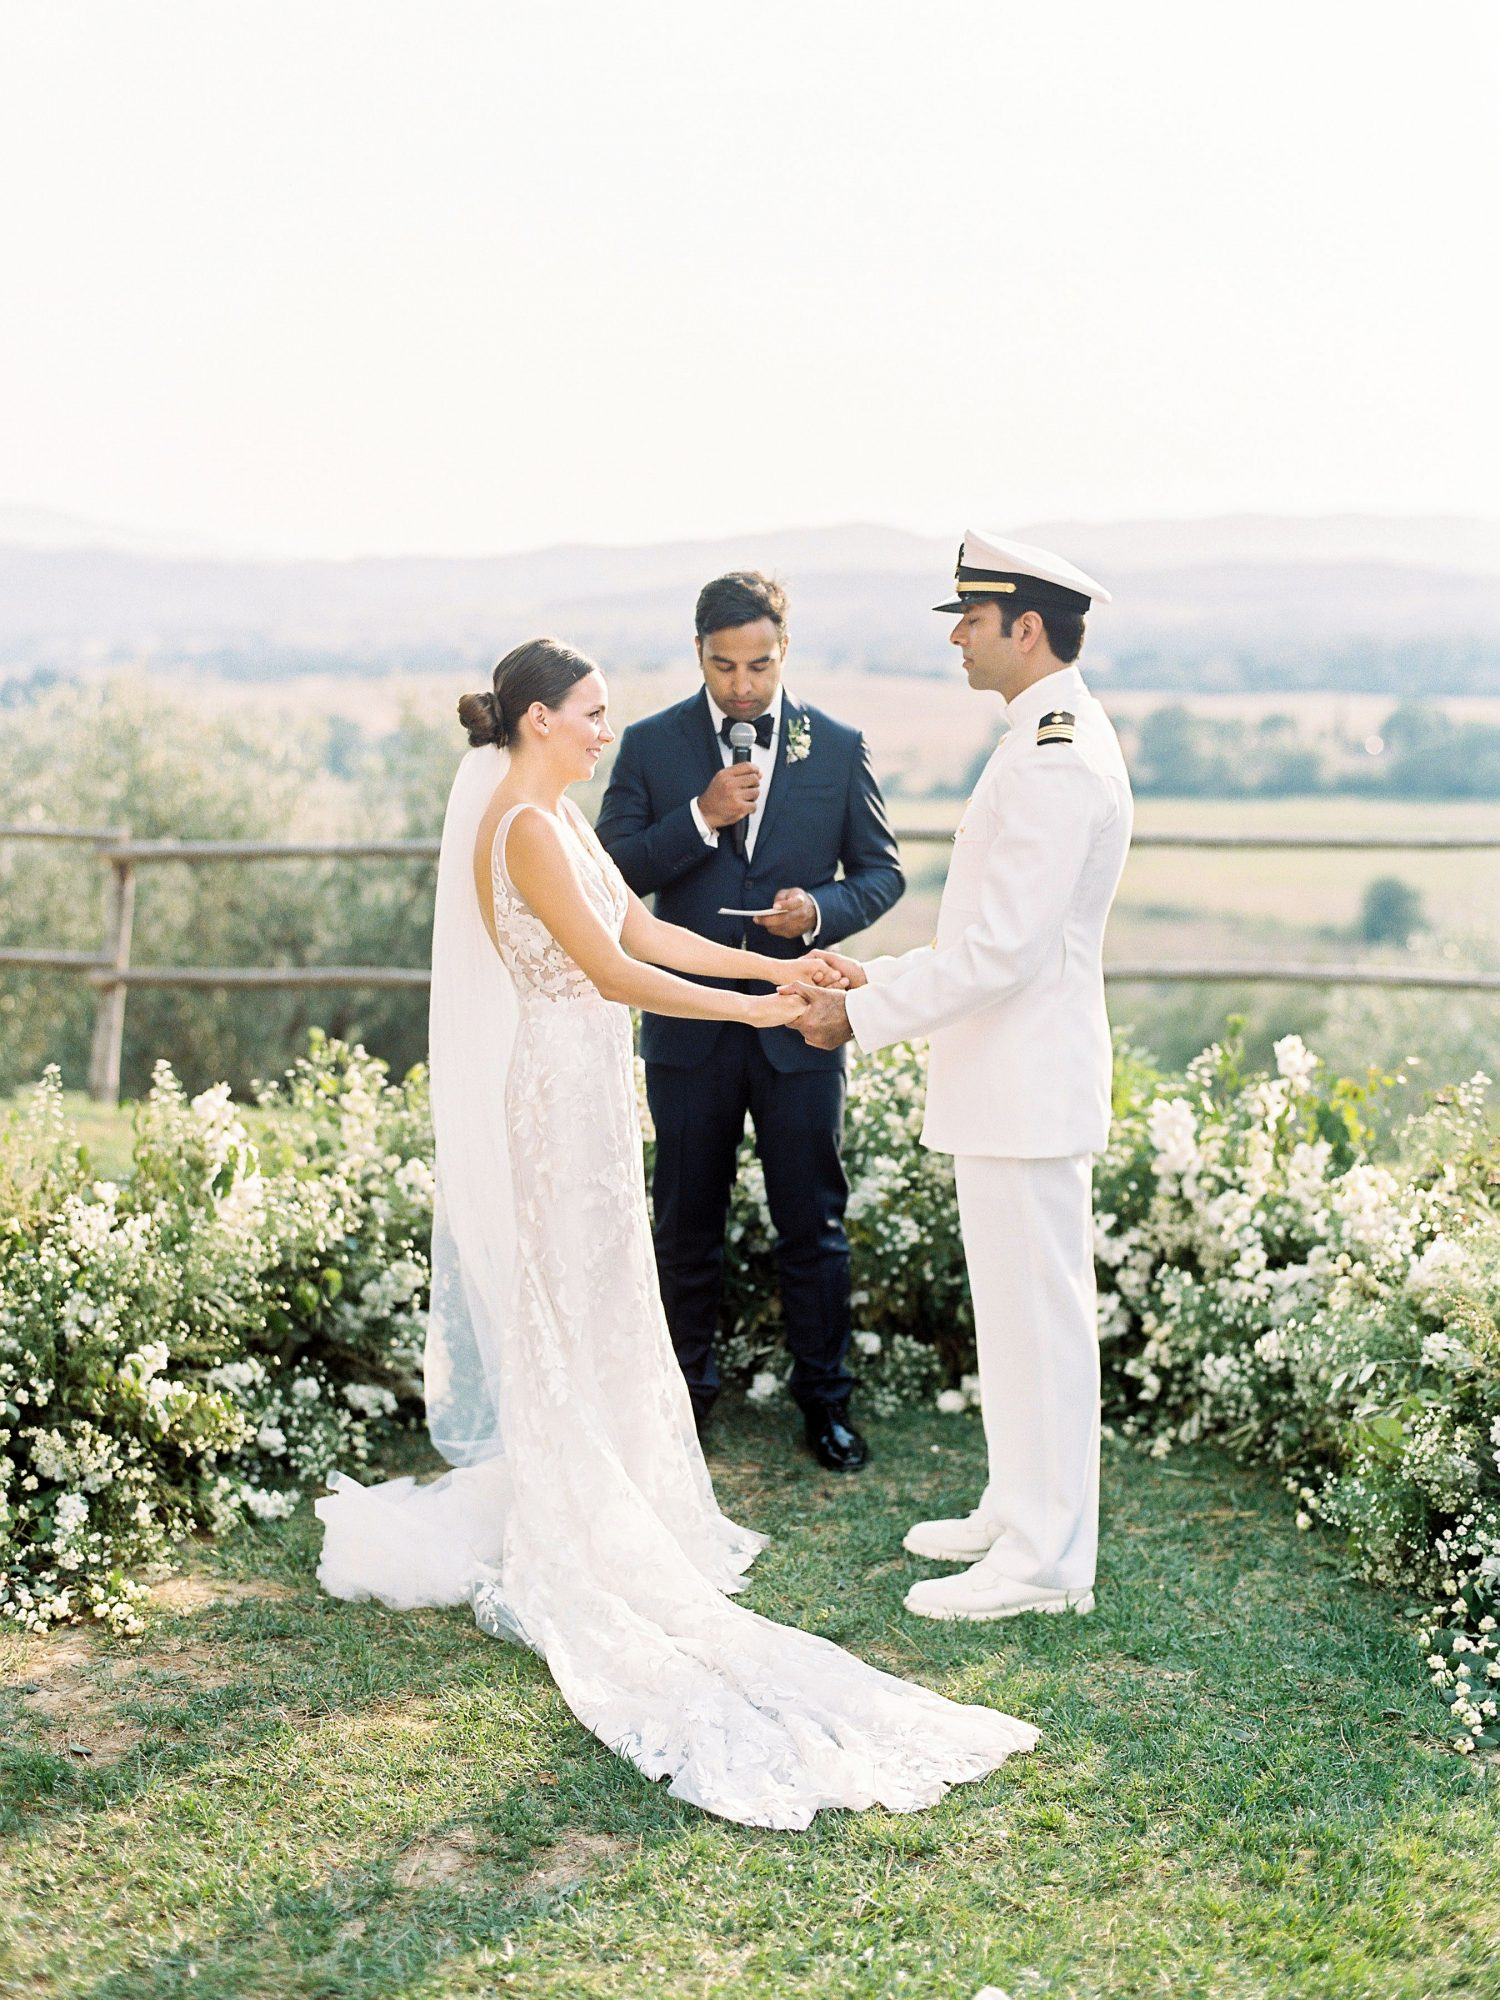 kseniya sadhir wedding outdoor ceremony couple and officiant